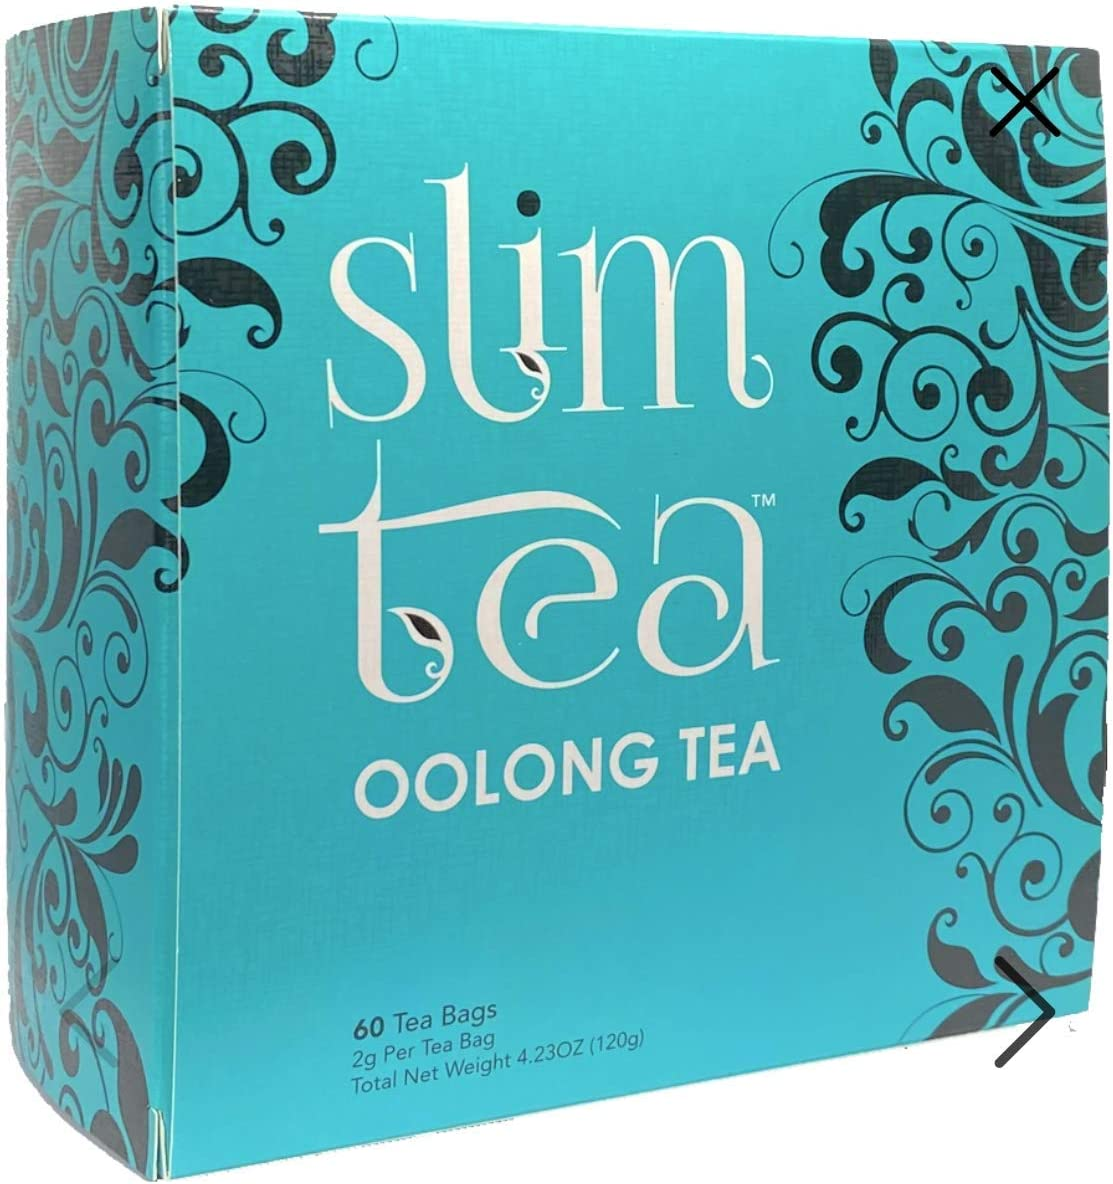 SlimTea Kenyan Oolong Tea – Highly Concentrated Slimming Tea to Burn Calories – All Natural Weight Loss, Detox, Diet Tea, Anti-Acne – Special Proprietary Blend with High EGCG – 1 month supply 96g